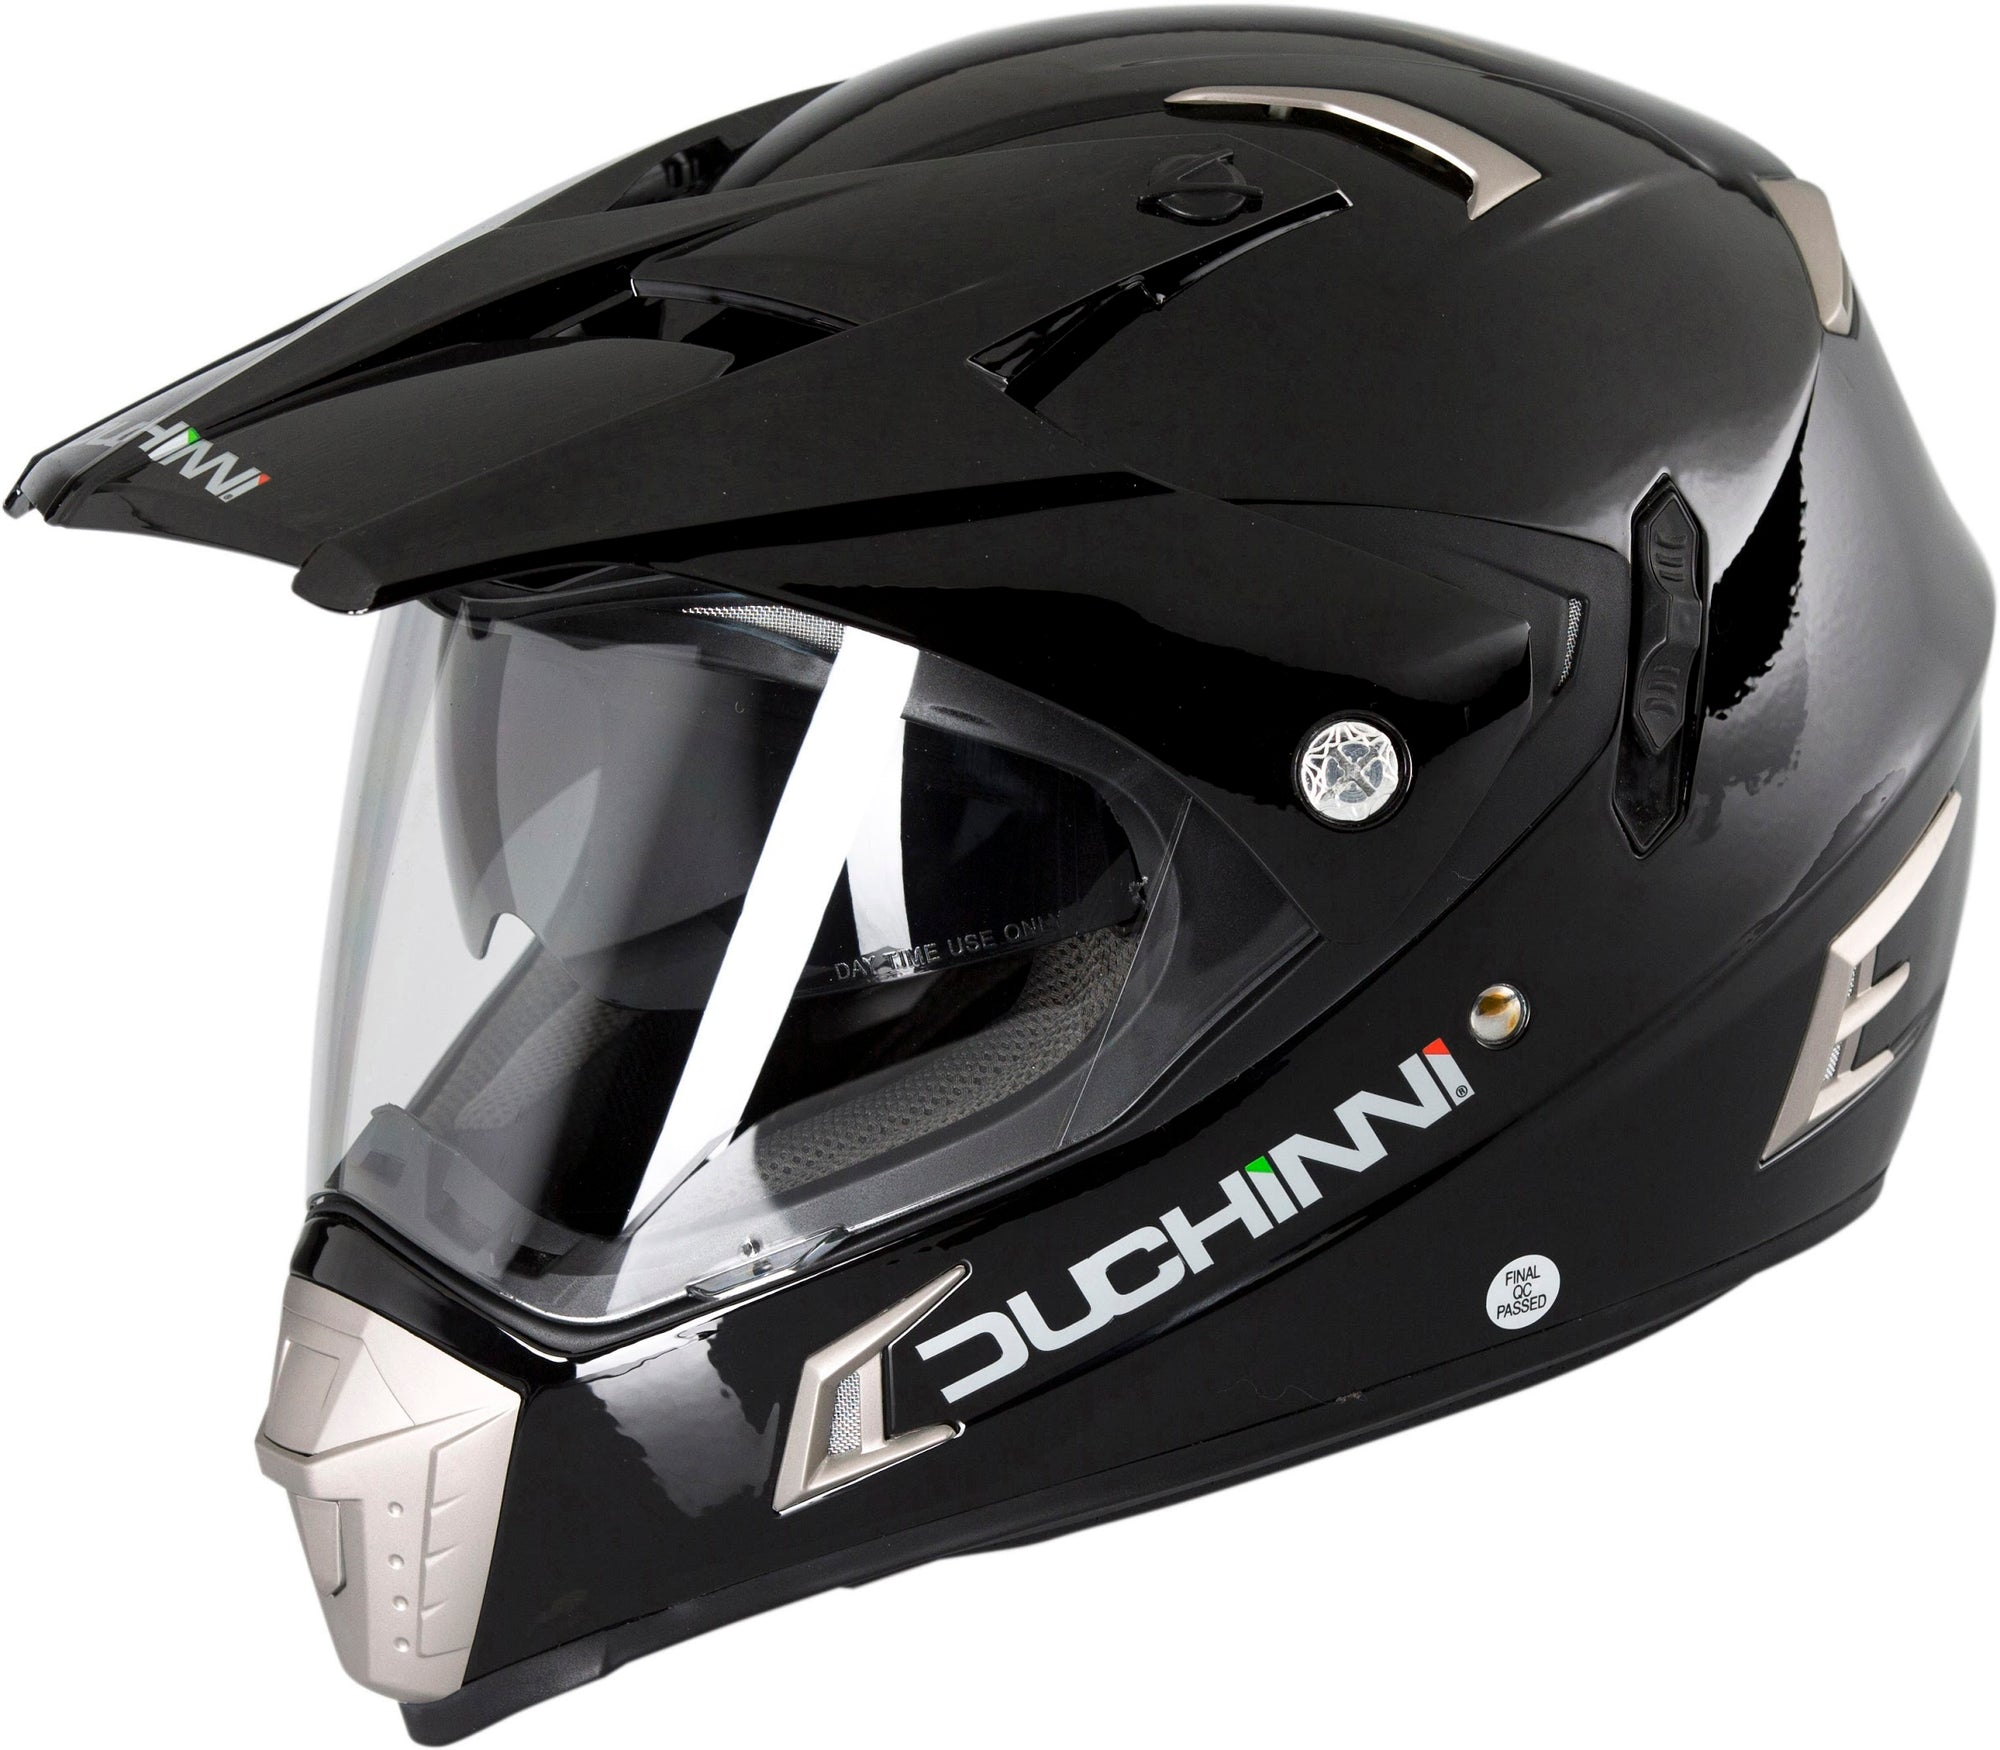 Duchinni D311 Dual Adventure, Helmet, Duchinni - Averys Motorcycles